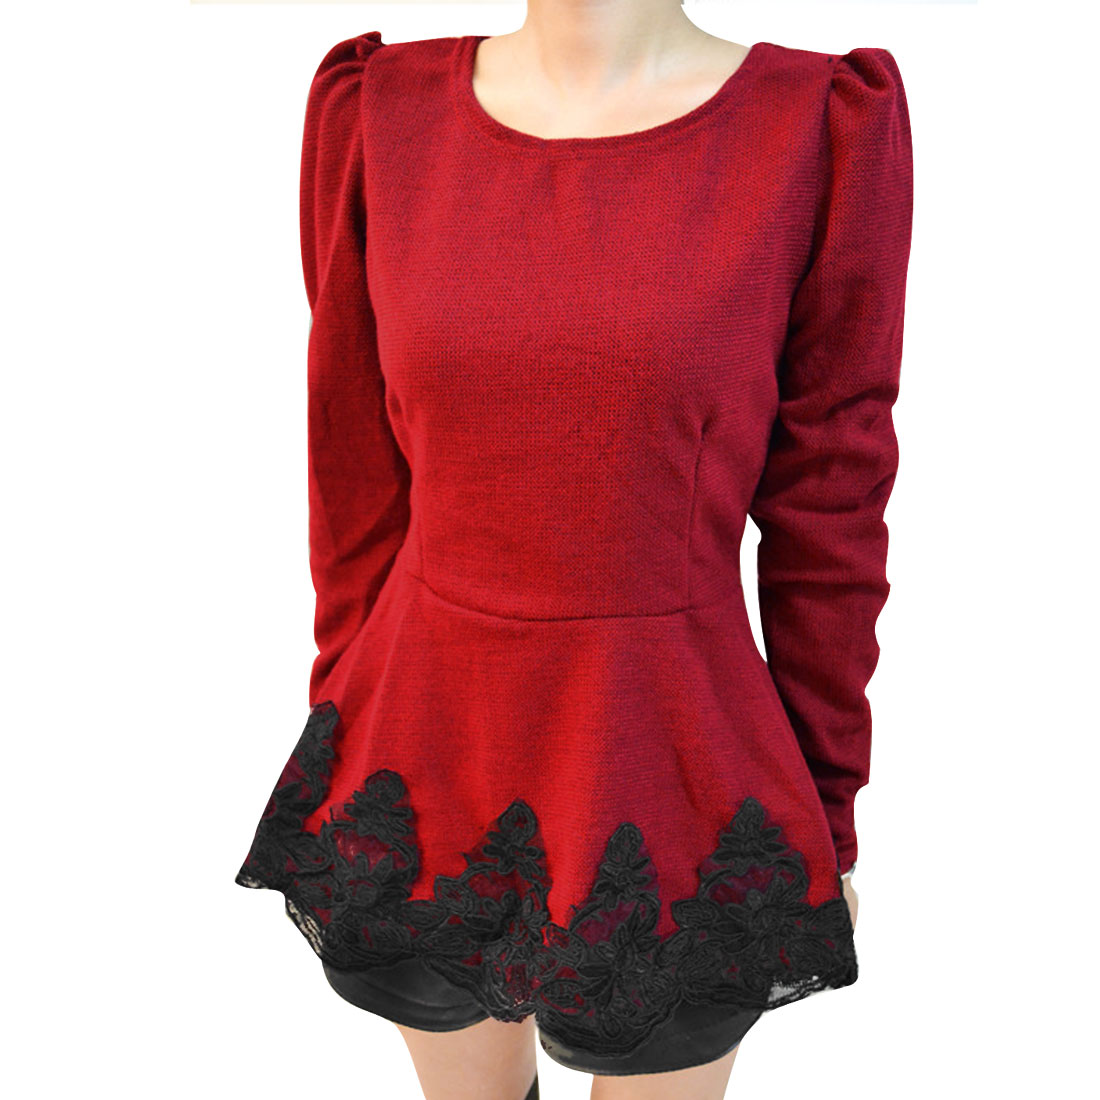 Women Red Splicing Round Neck Long Sleeve Casual Peplum Blouse XS